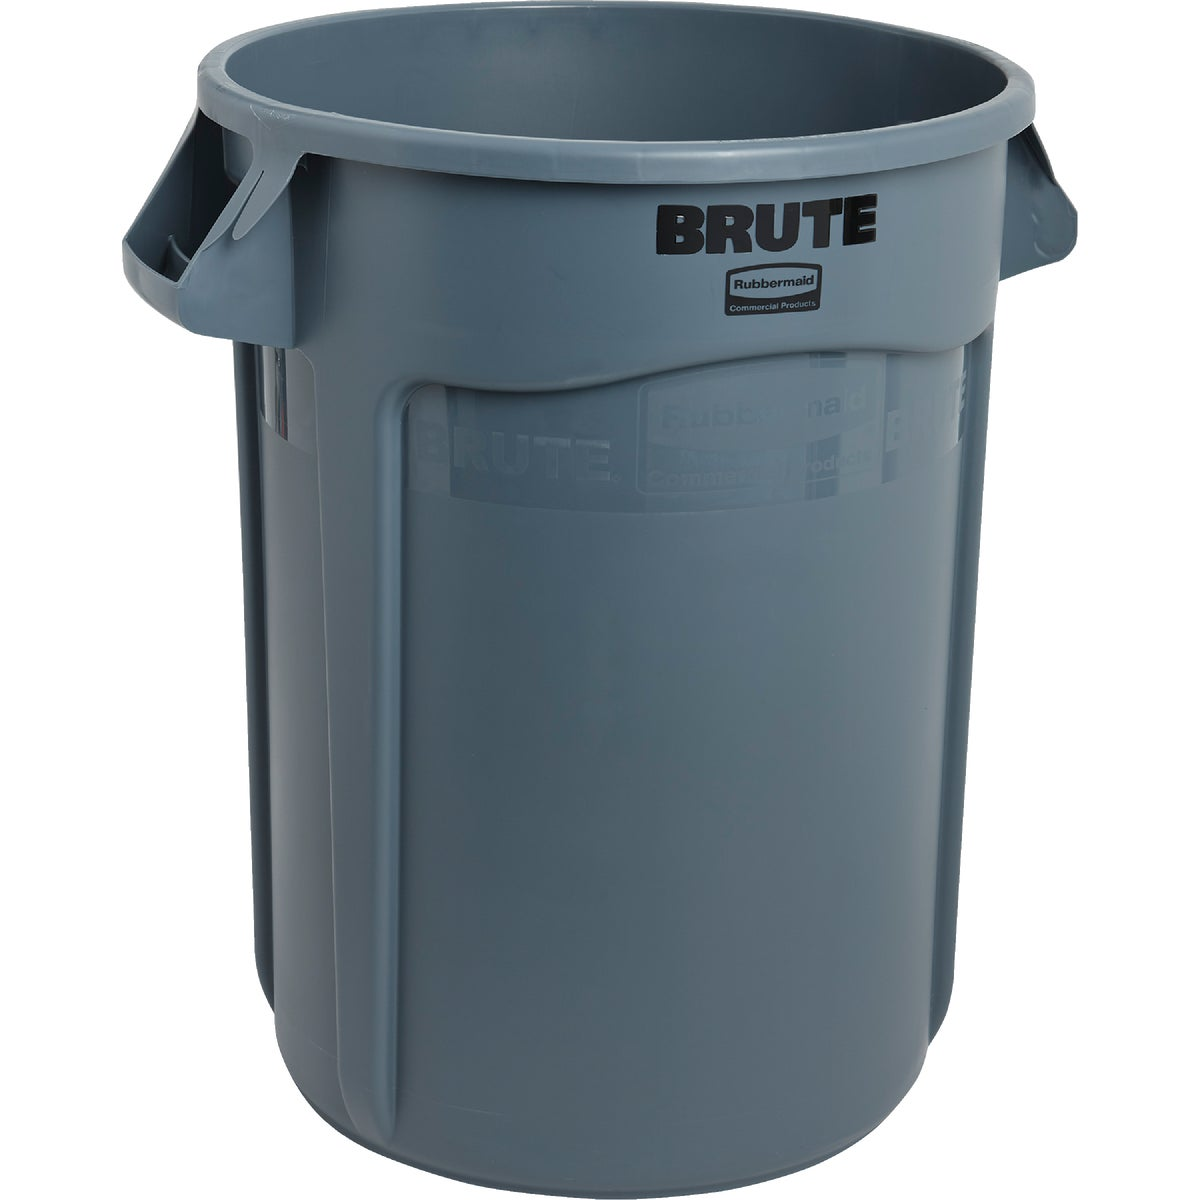 32GAL PLASTIC TRASH CAN - FG263200GRAY by Rubbermaid Comm Prod